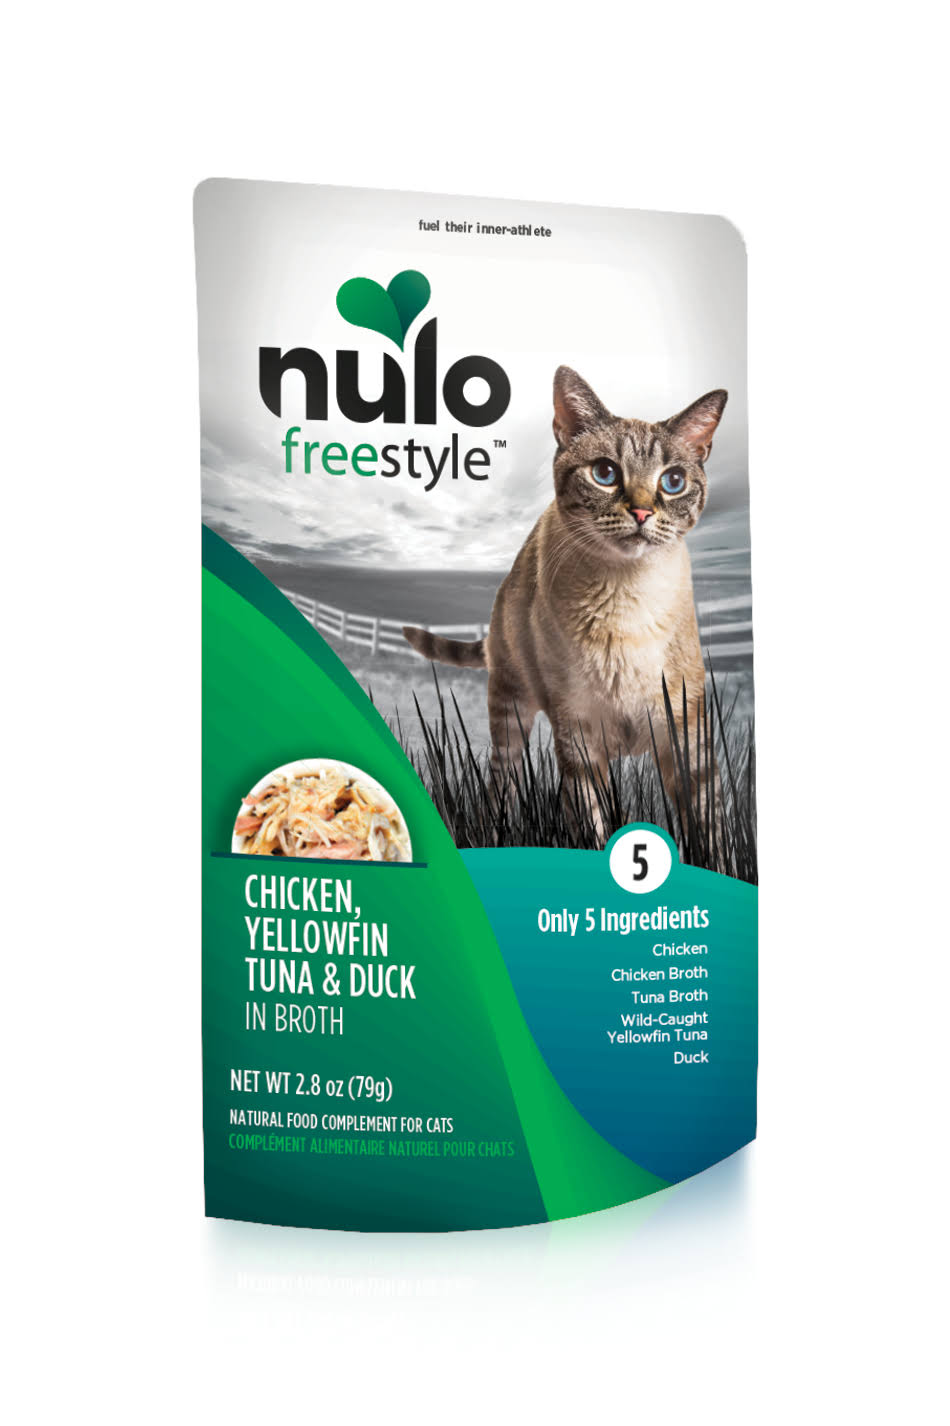 Nulo Freestyle Chicken, Yellowfin Tuna, Duck in Broth Wet Cat Food, 2.8 oz